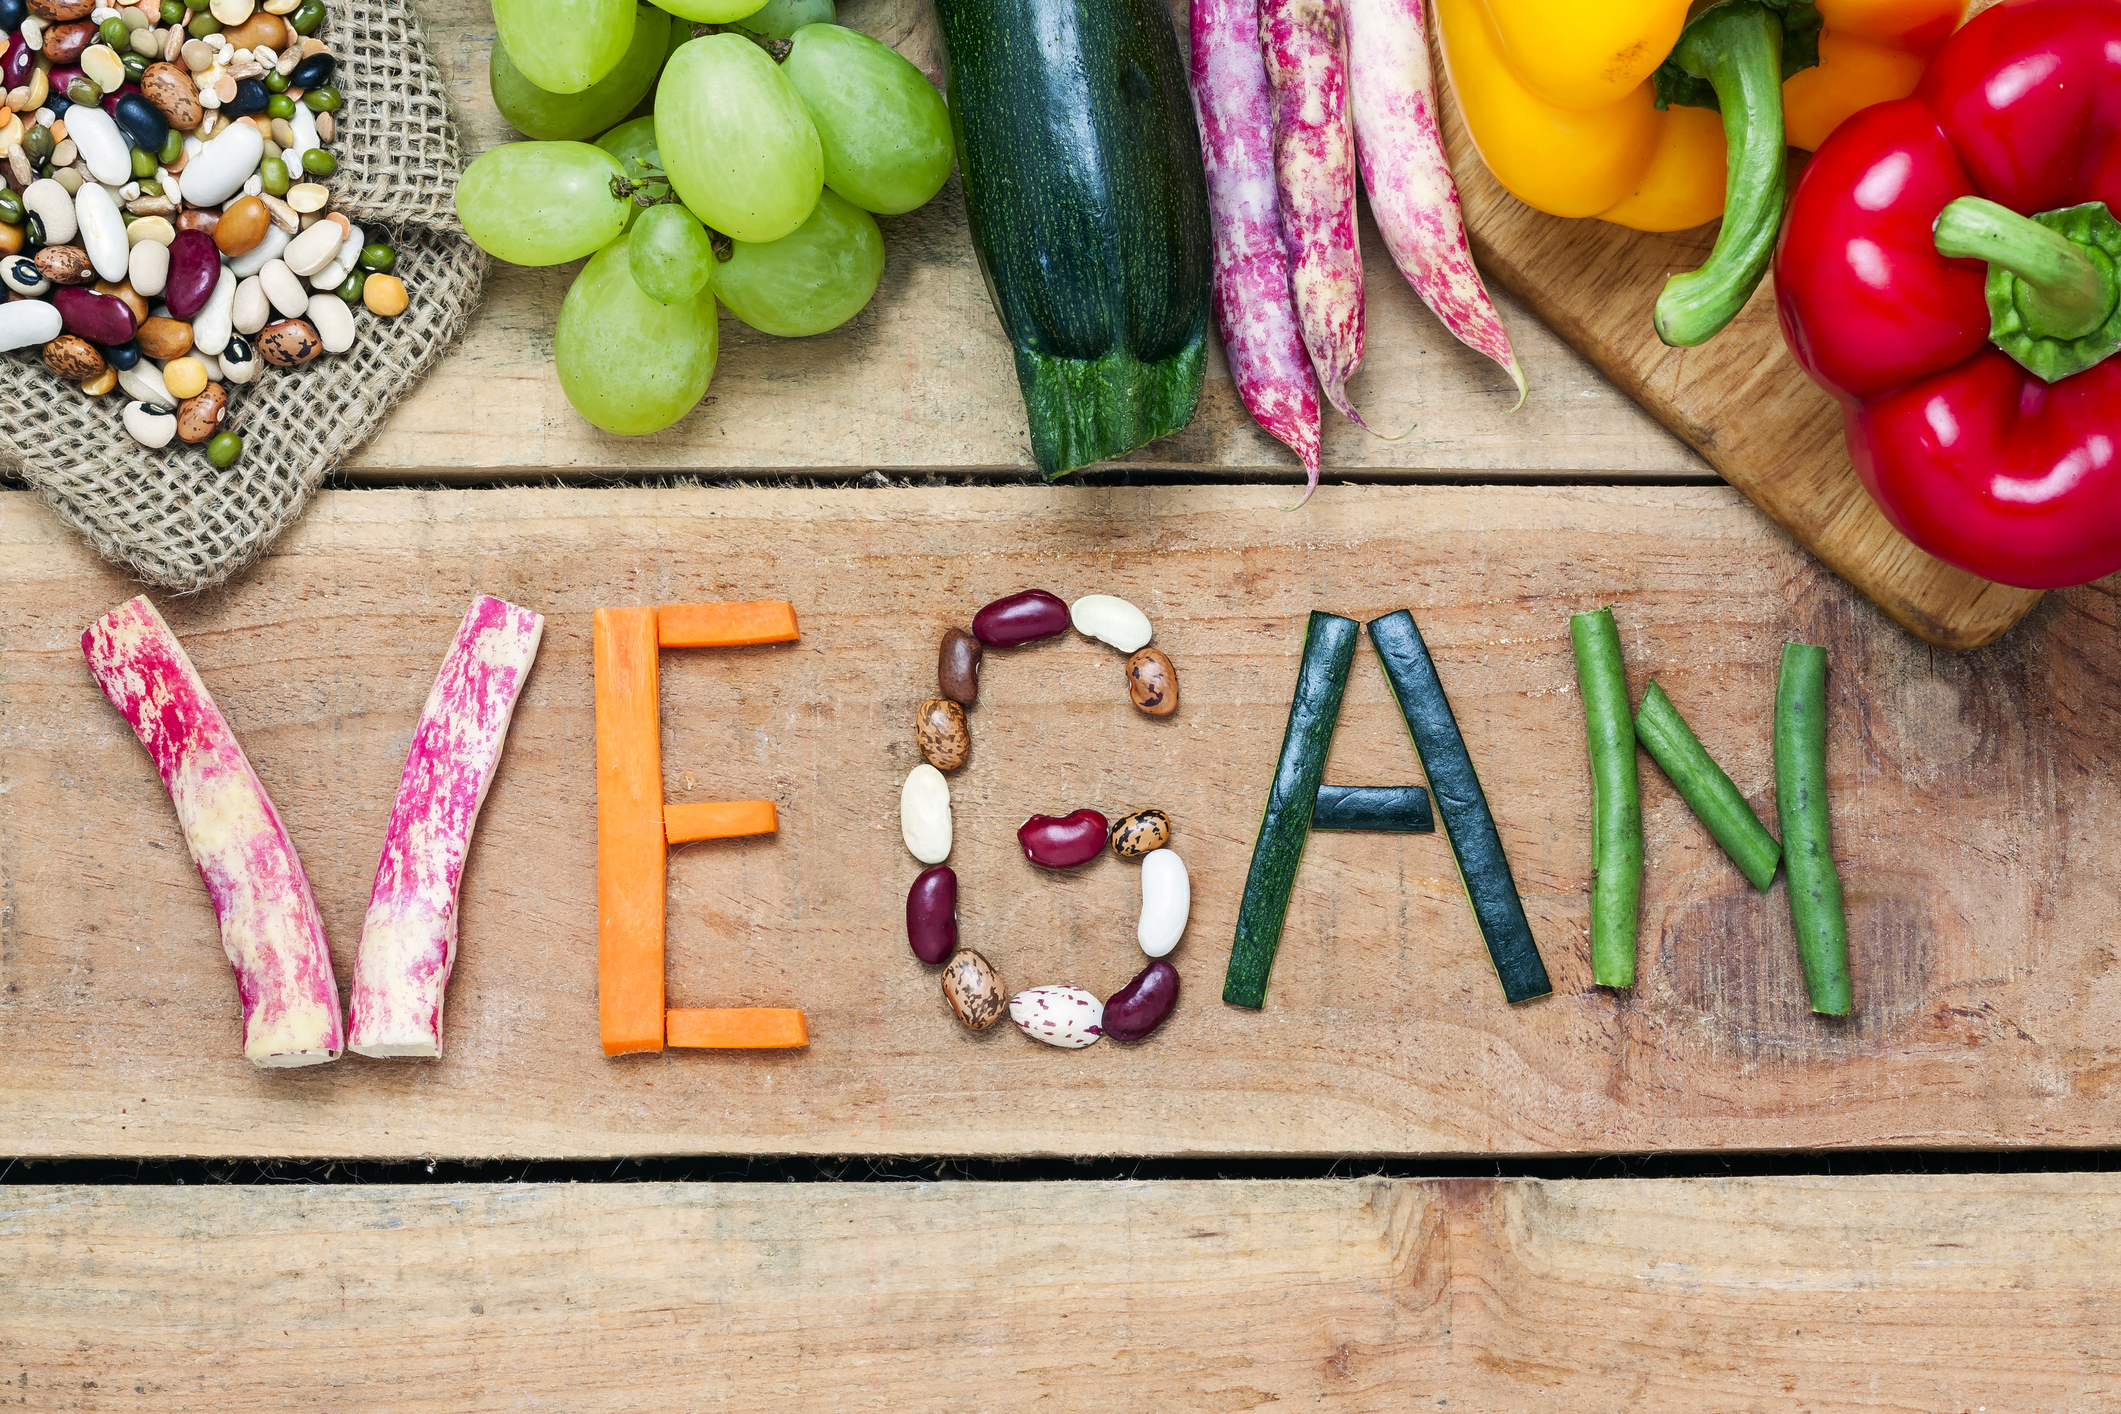 Mired in myths, the concept of veganism is slowly breaking through barriers and percolating into middle-class households